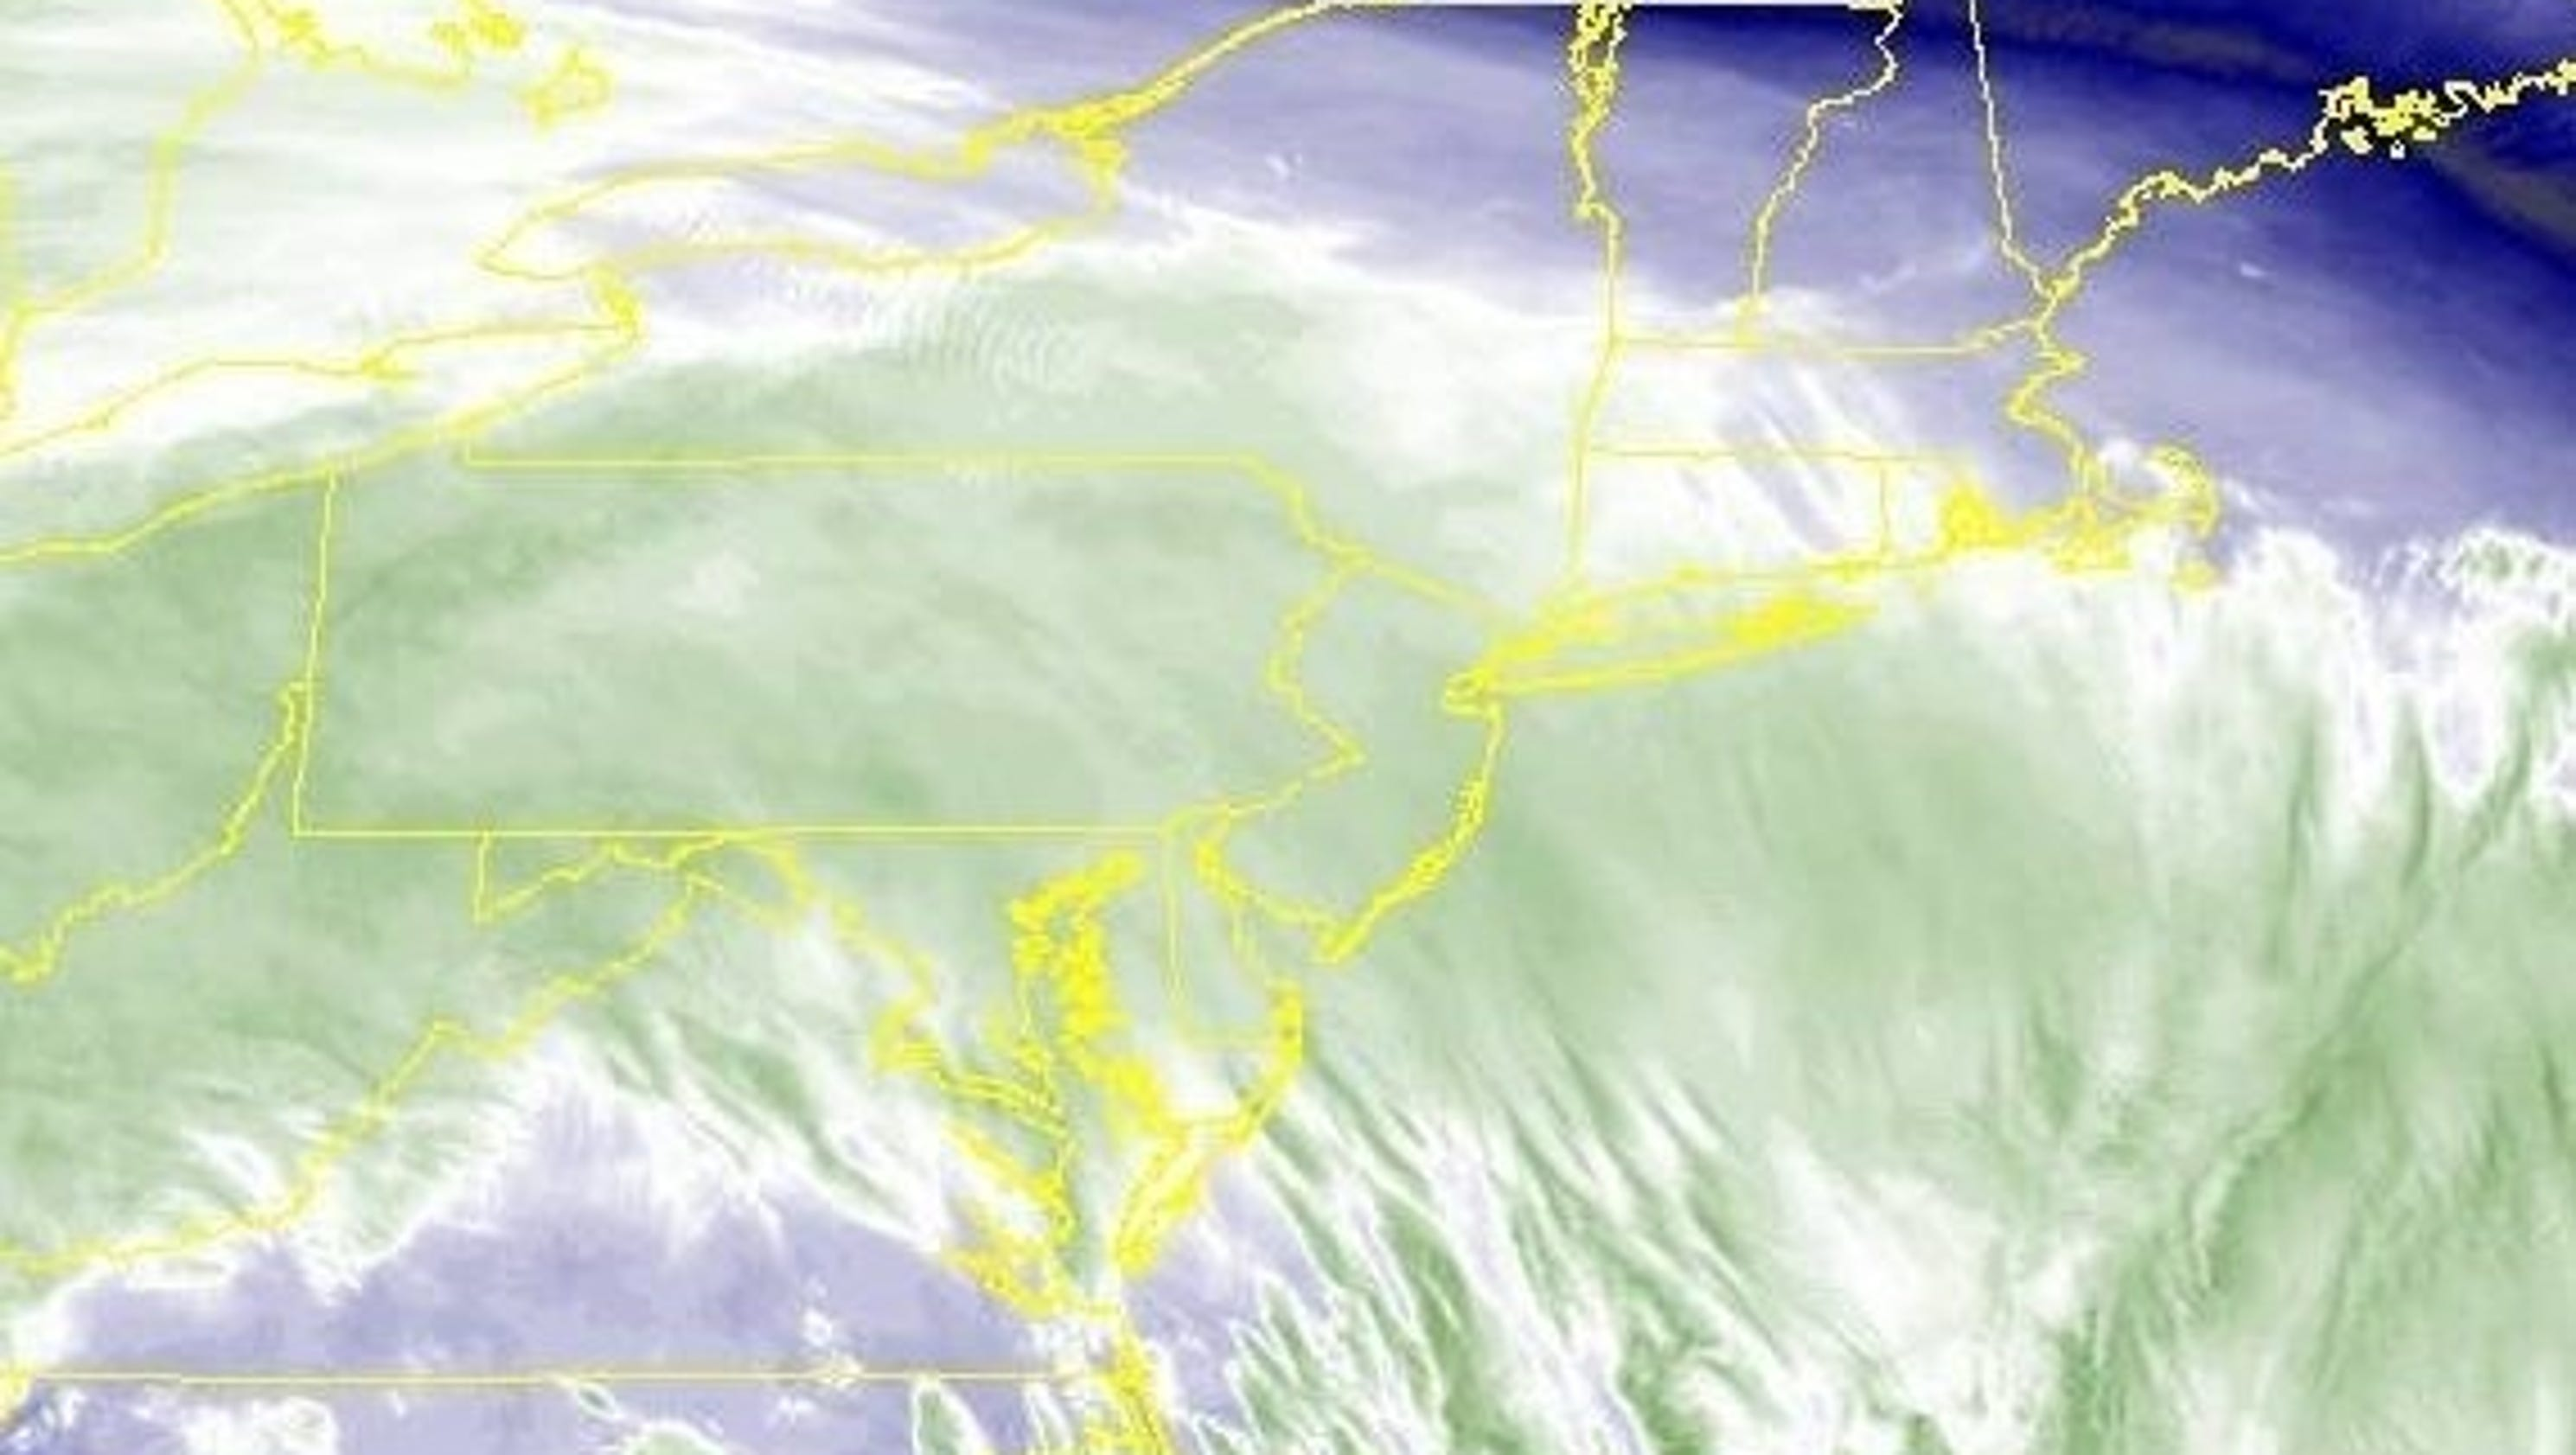 Nj weather will this noreaster become a bomb cyclone nvjuhfo Image collections